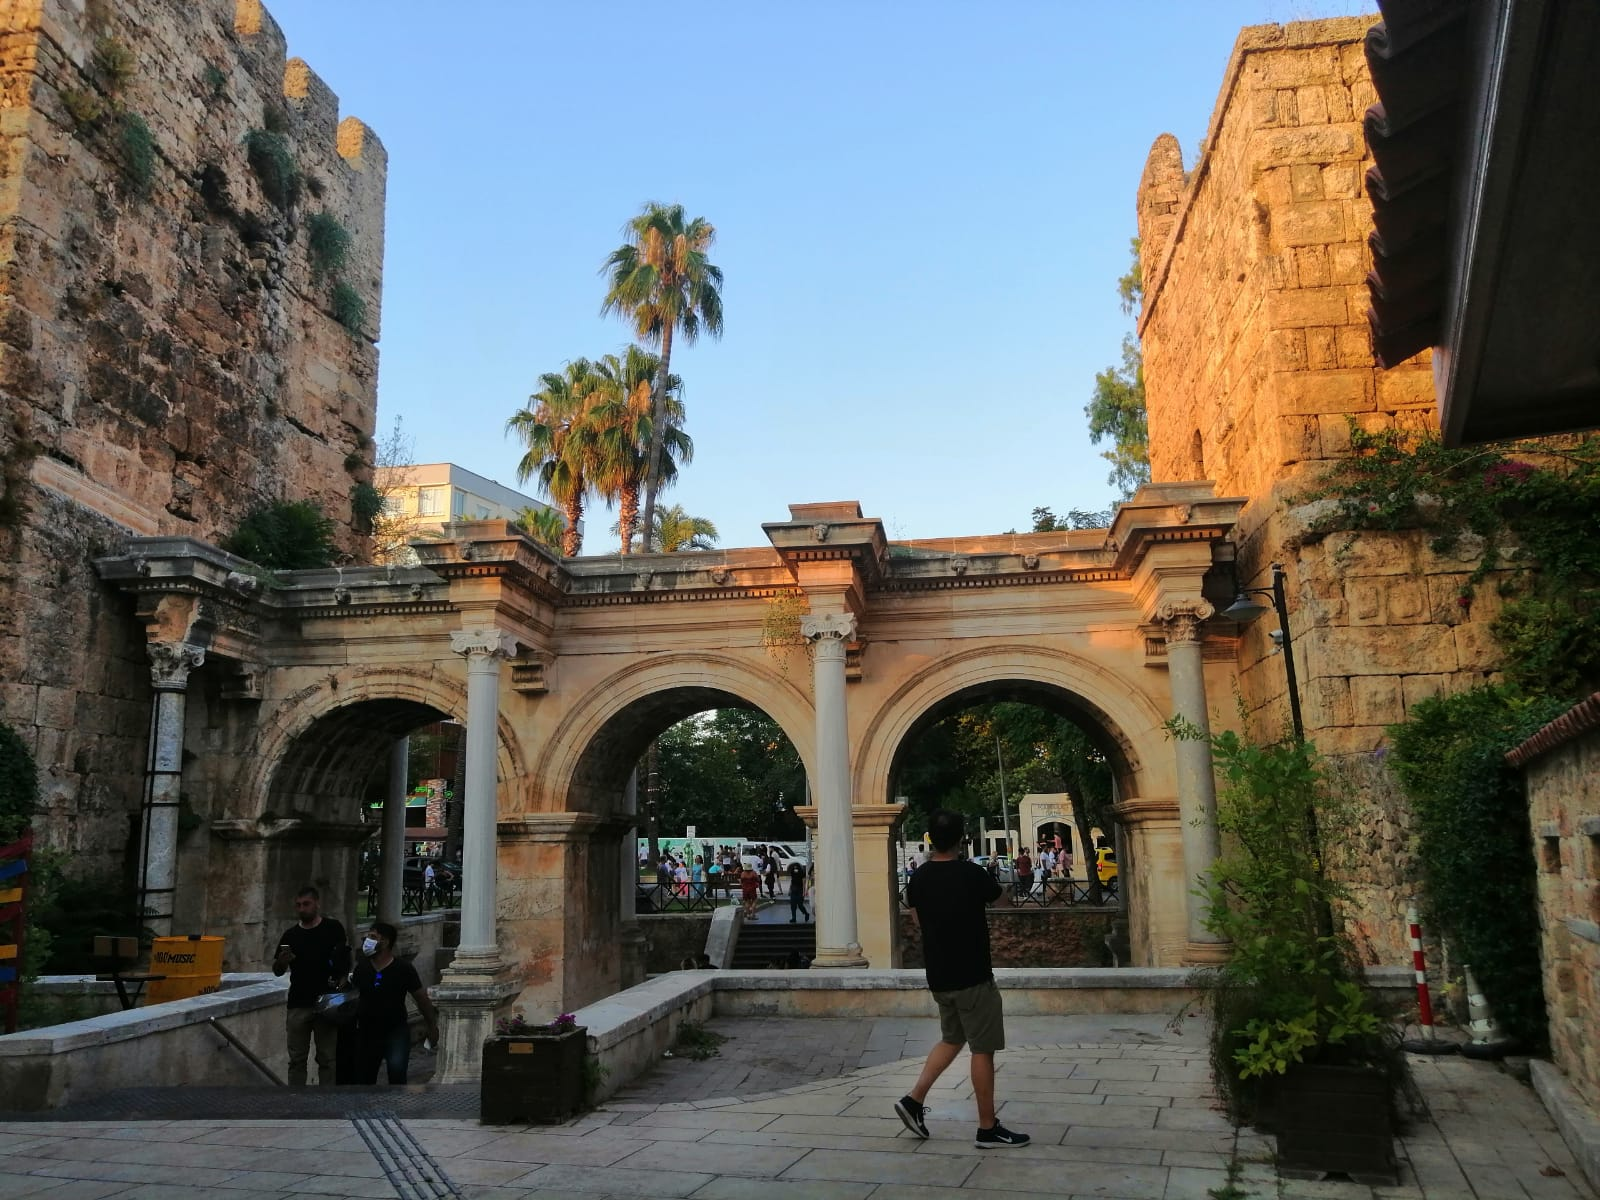 Tourism in Antalya after the Covid-19 Travel Ban